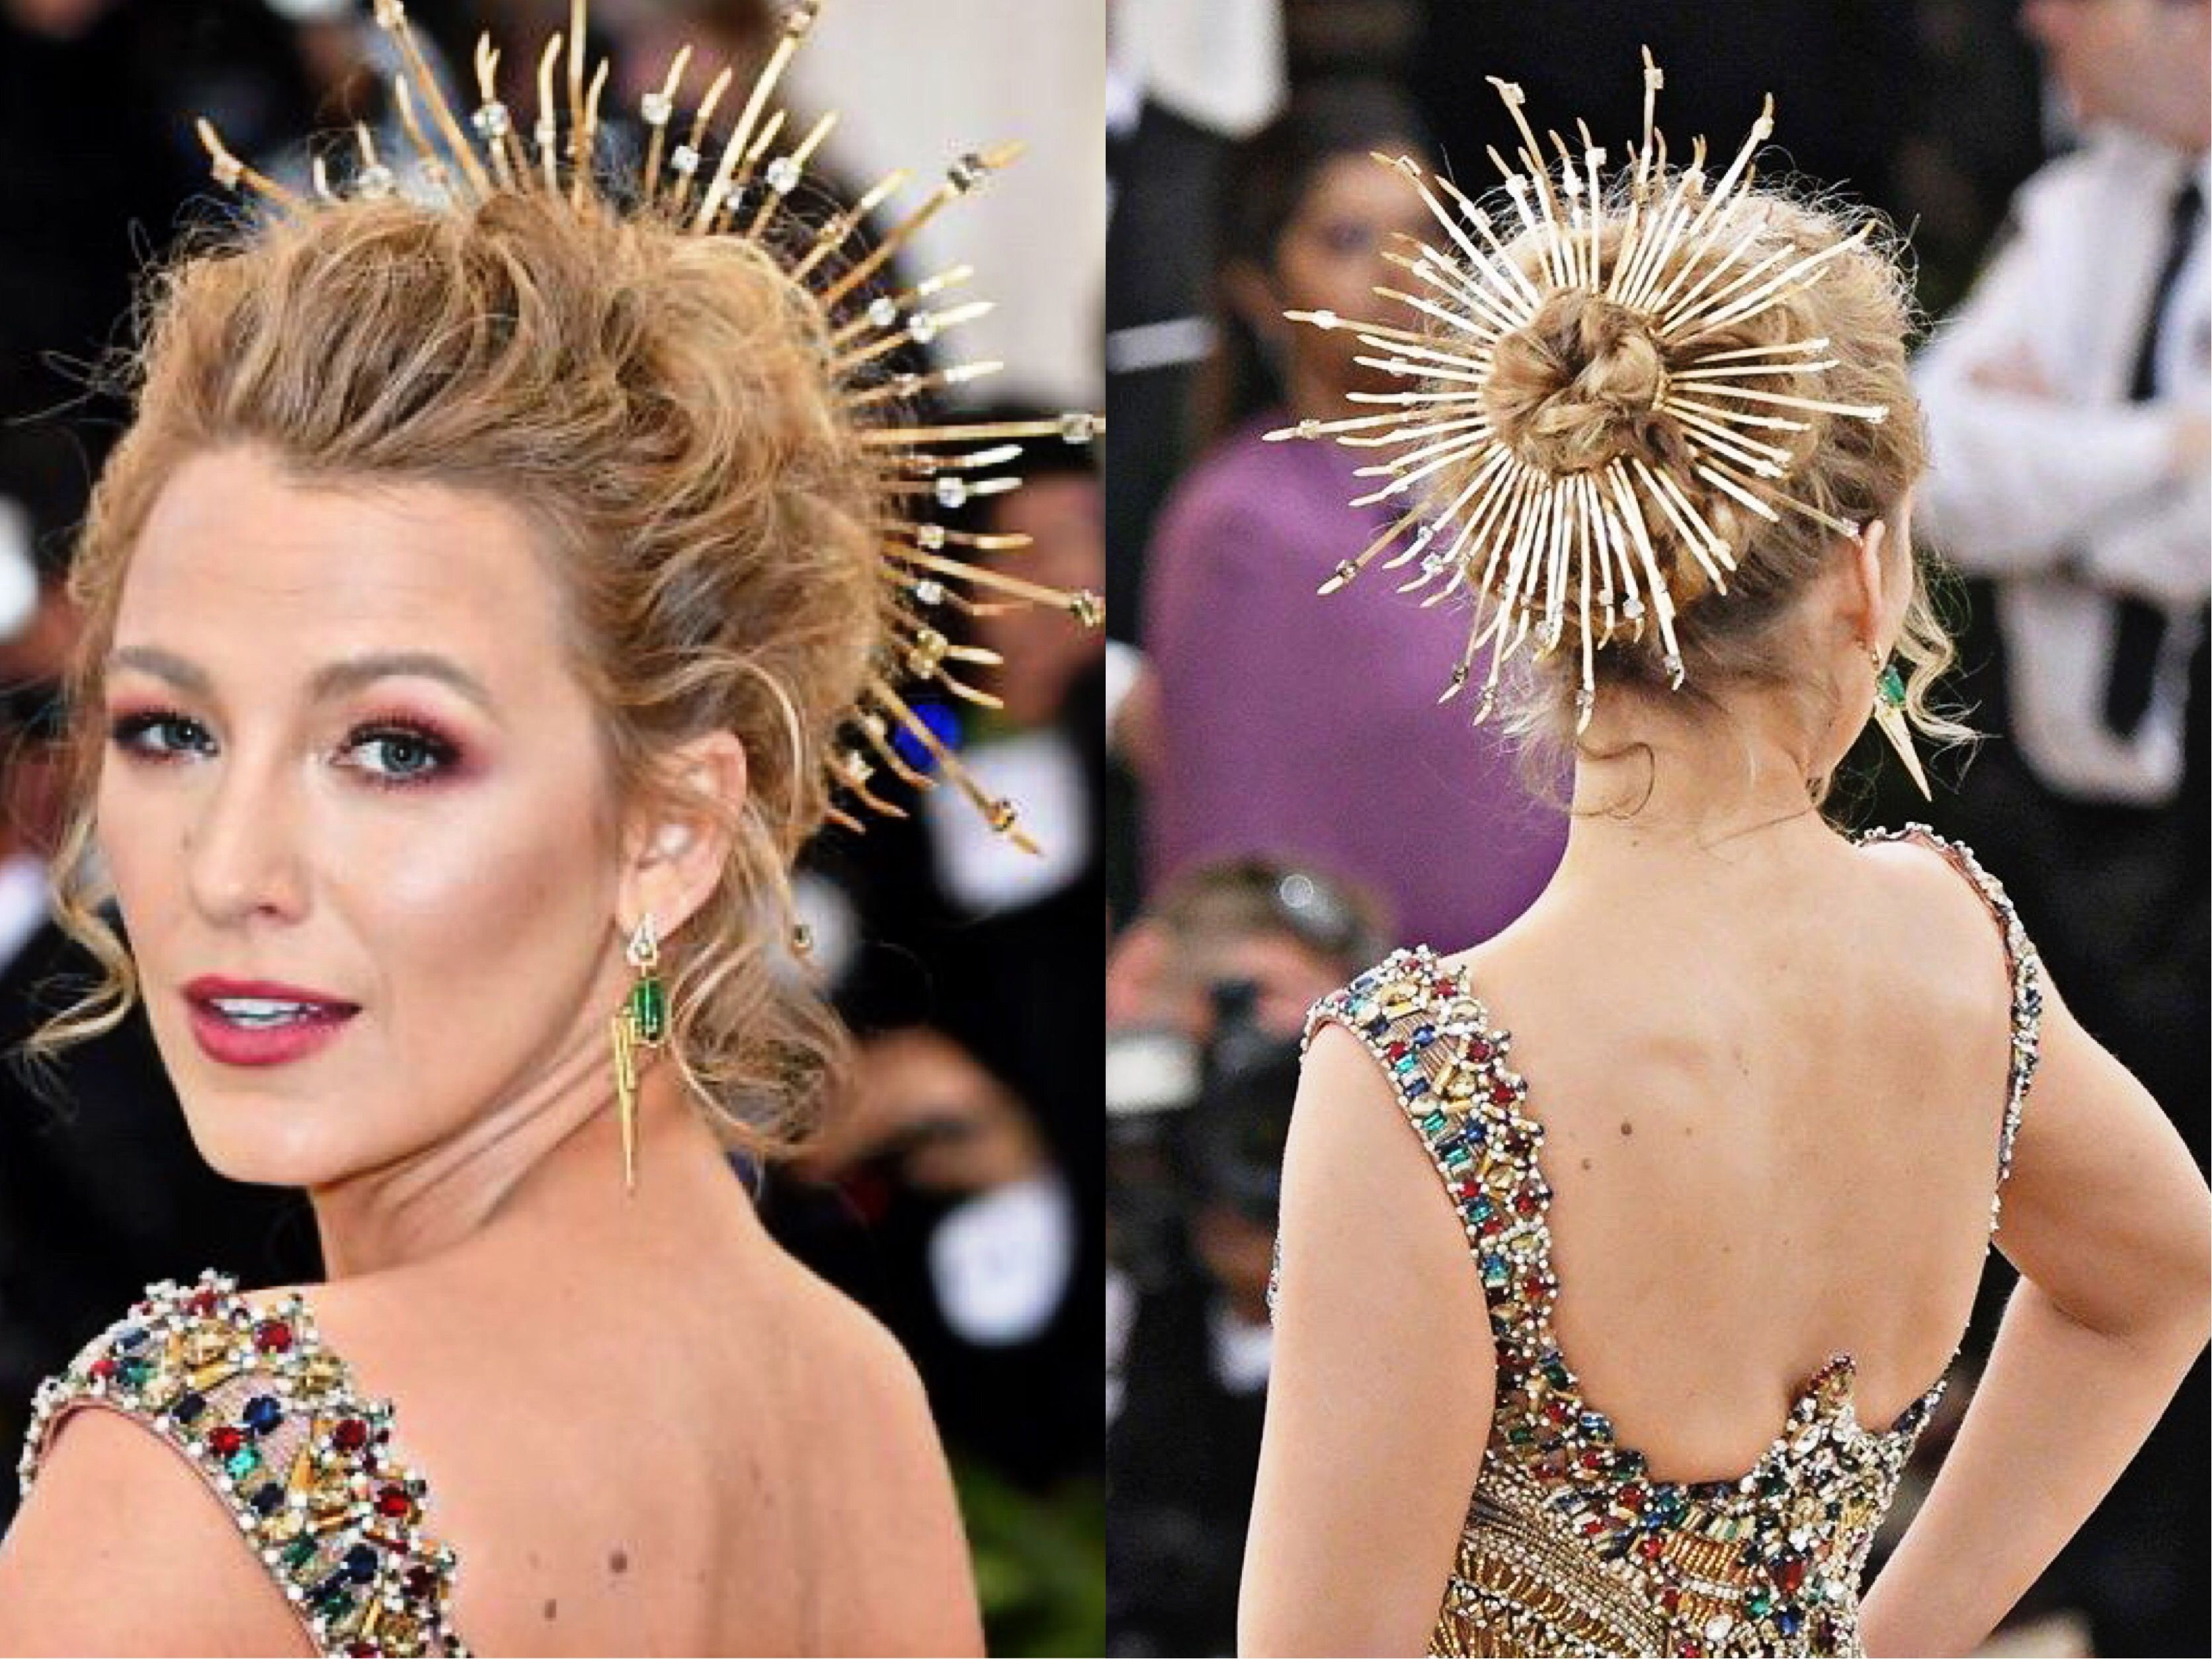 Crown inspired hairstyle worn by Blake Lively at 2018s Met Gala